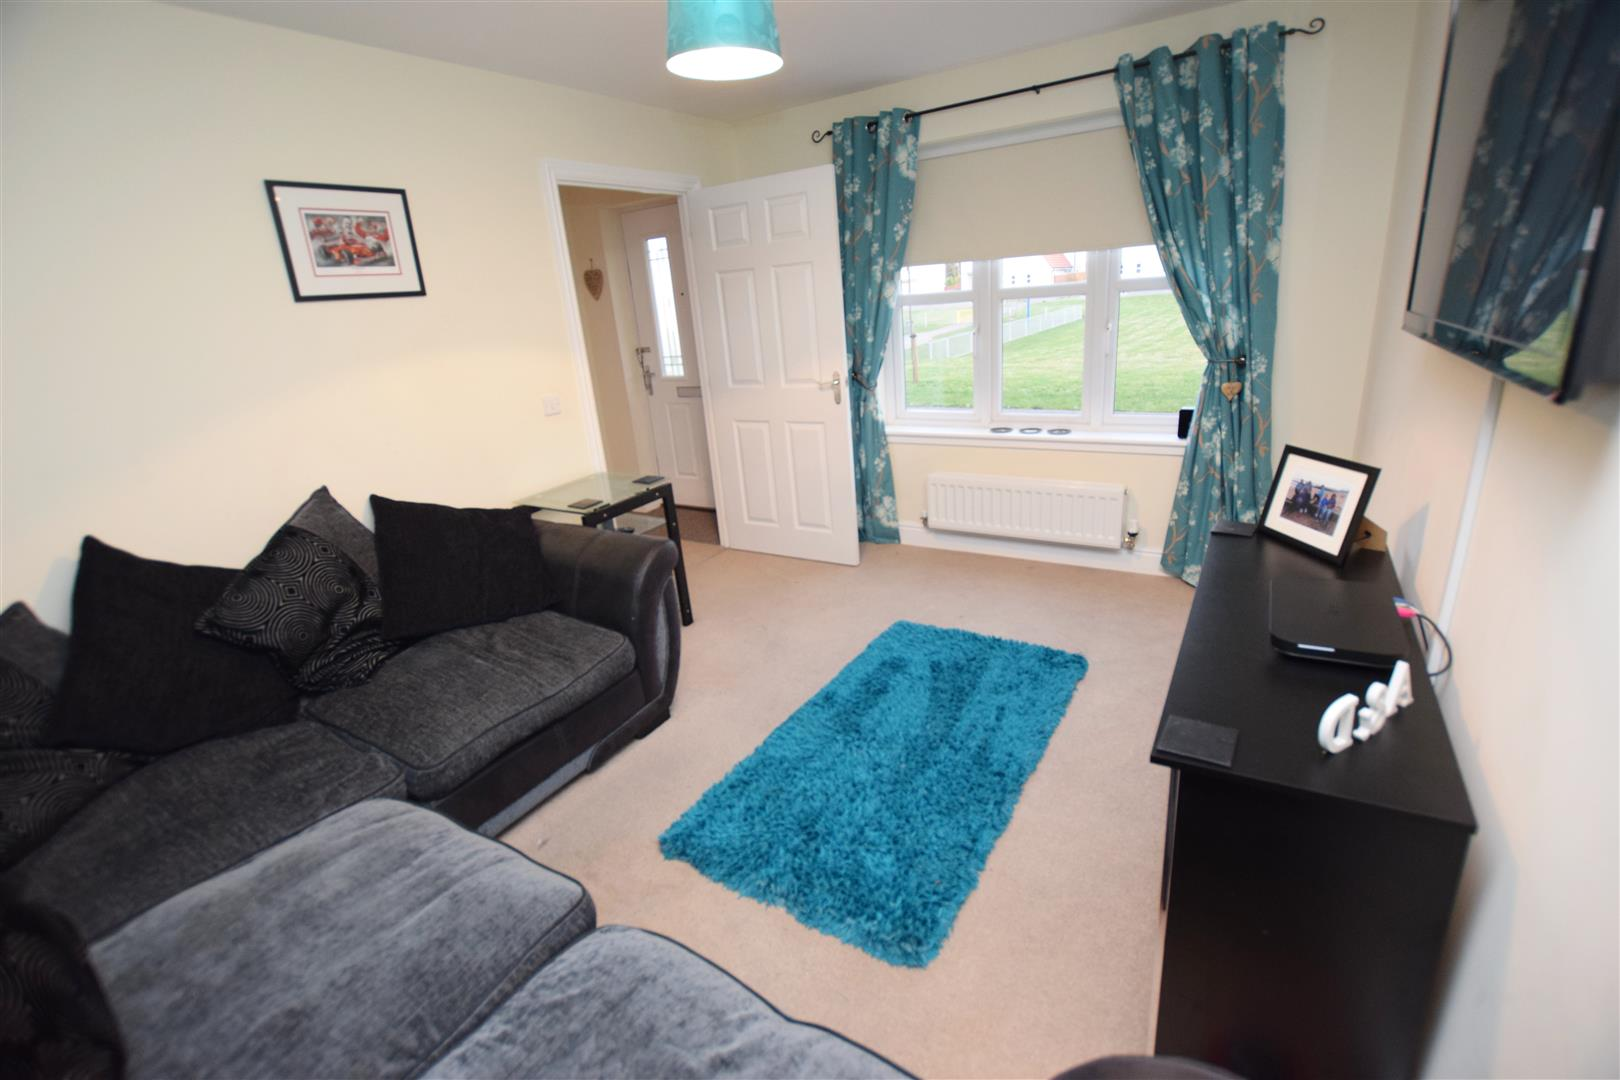 22, William Dickson Drive, Blairgowrie, Perthshire, PH10 6FB, UK